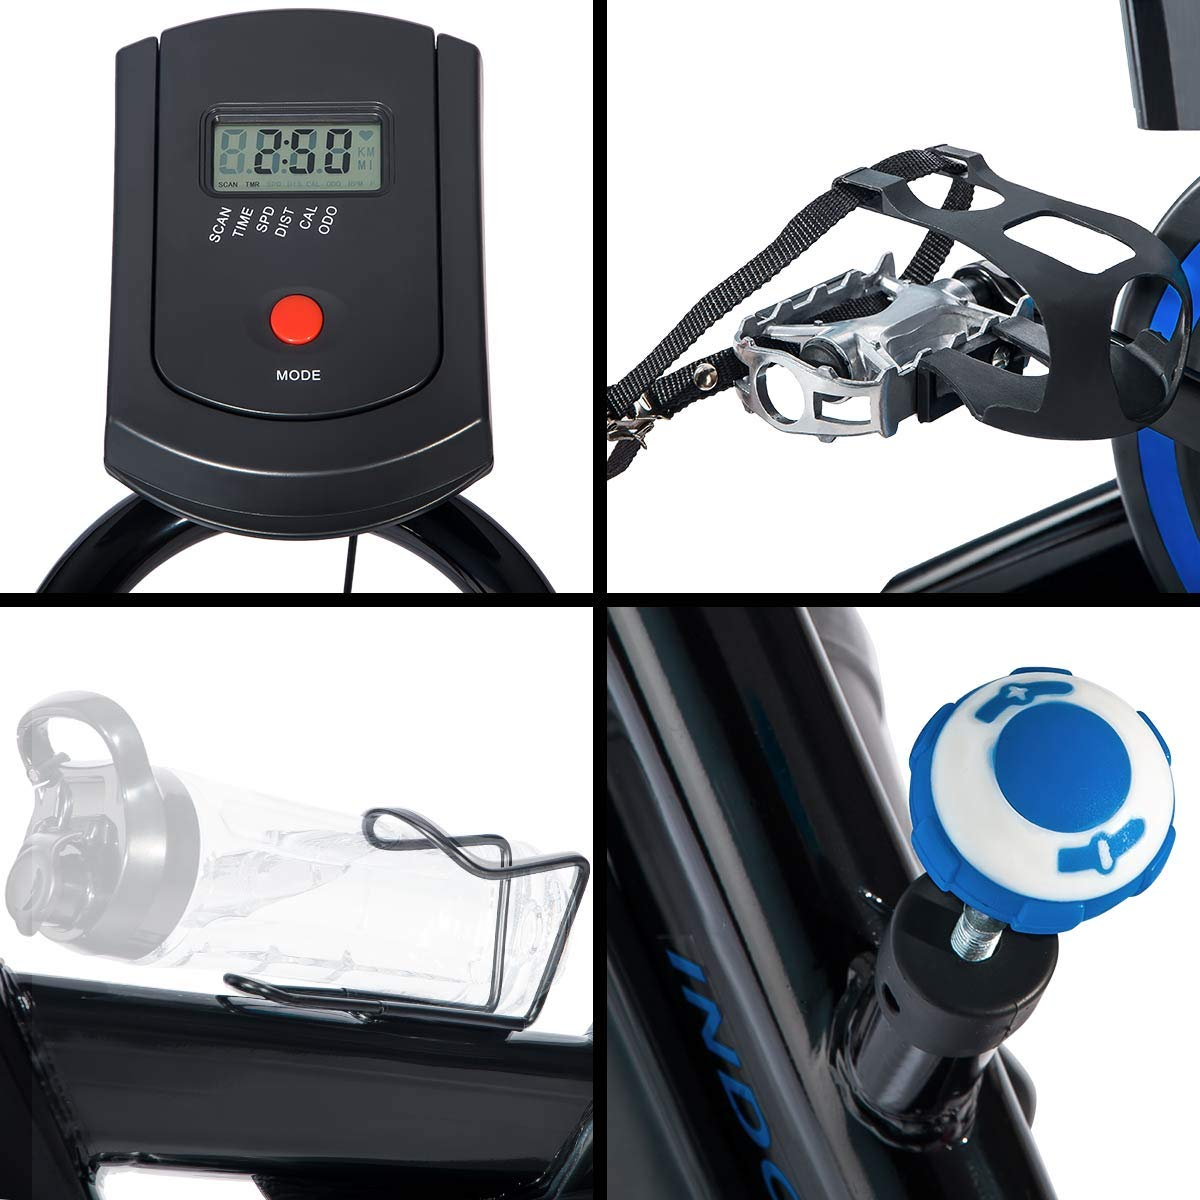 Merax Deluxe Indoor Cycling Bike Cycle Trainer Exercise Bicycle (Black with Blue) by Merax (Image #6)